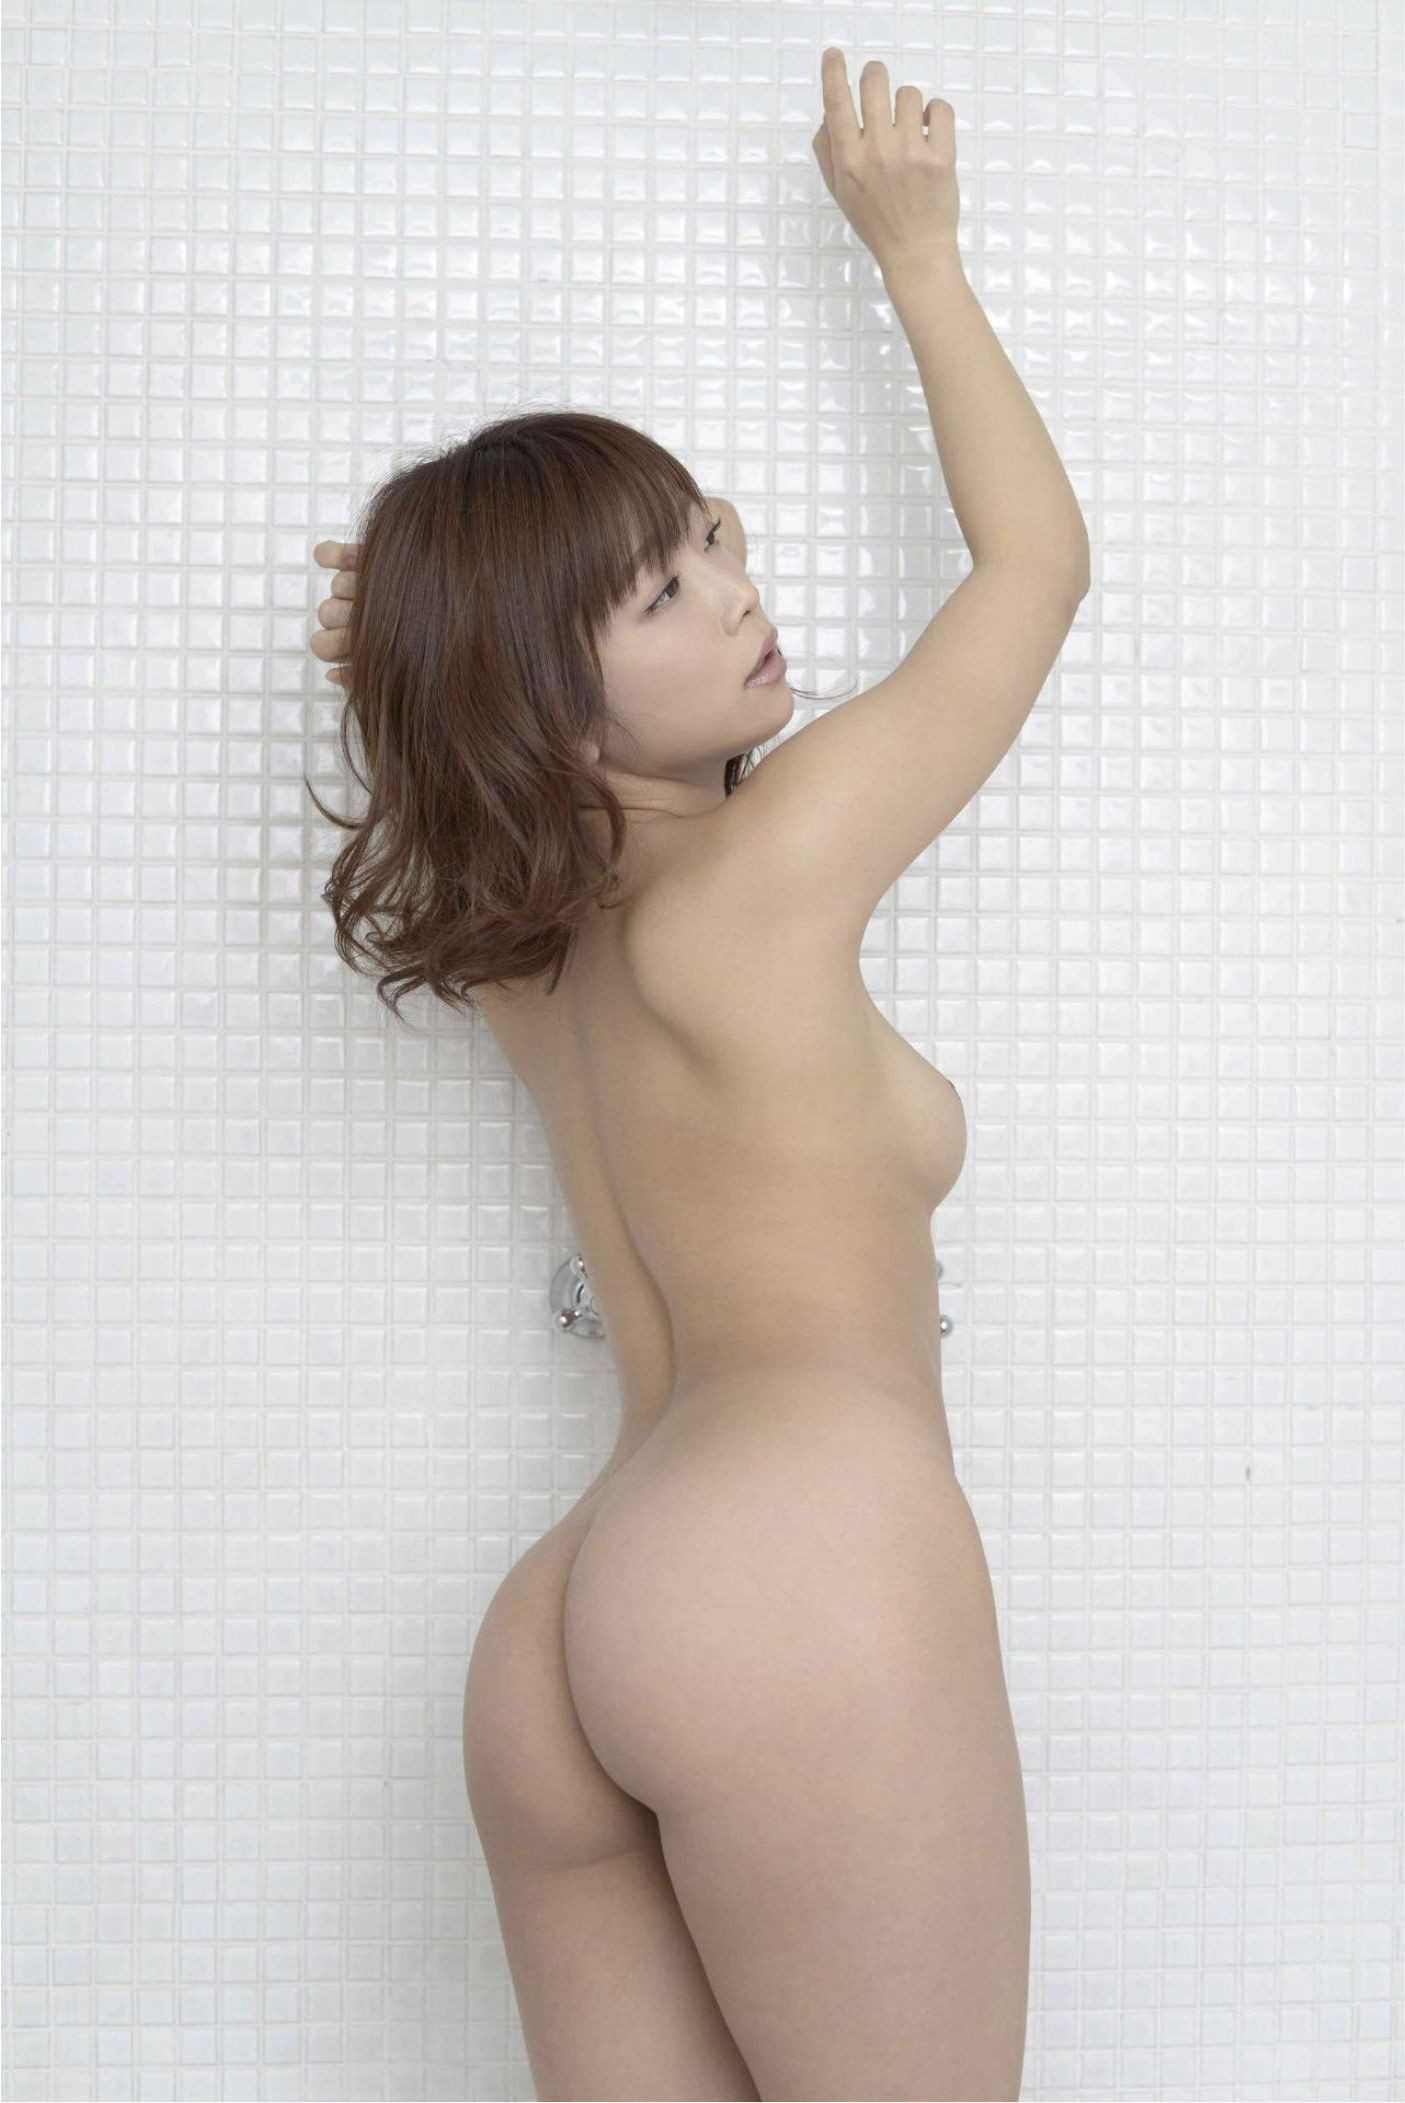 SOFT ON DEMAND GRAVURE COLLECTION 紗倉まな02 photo 053